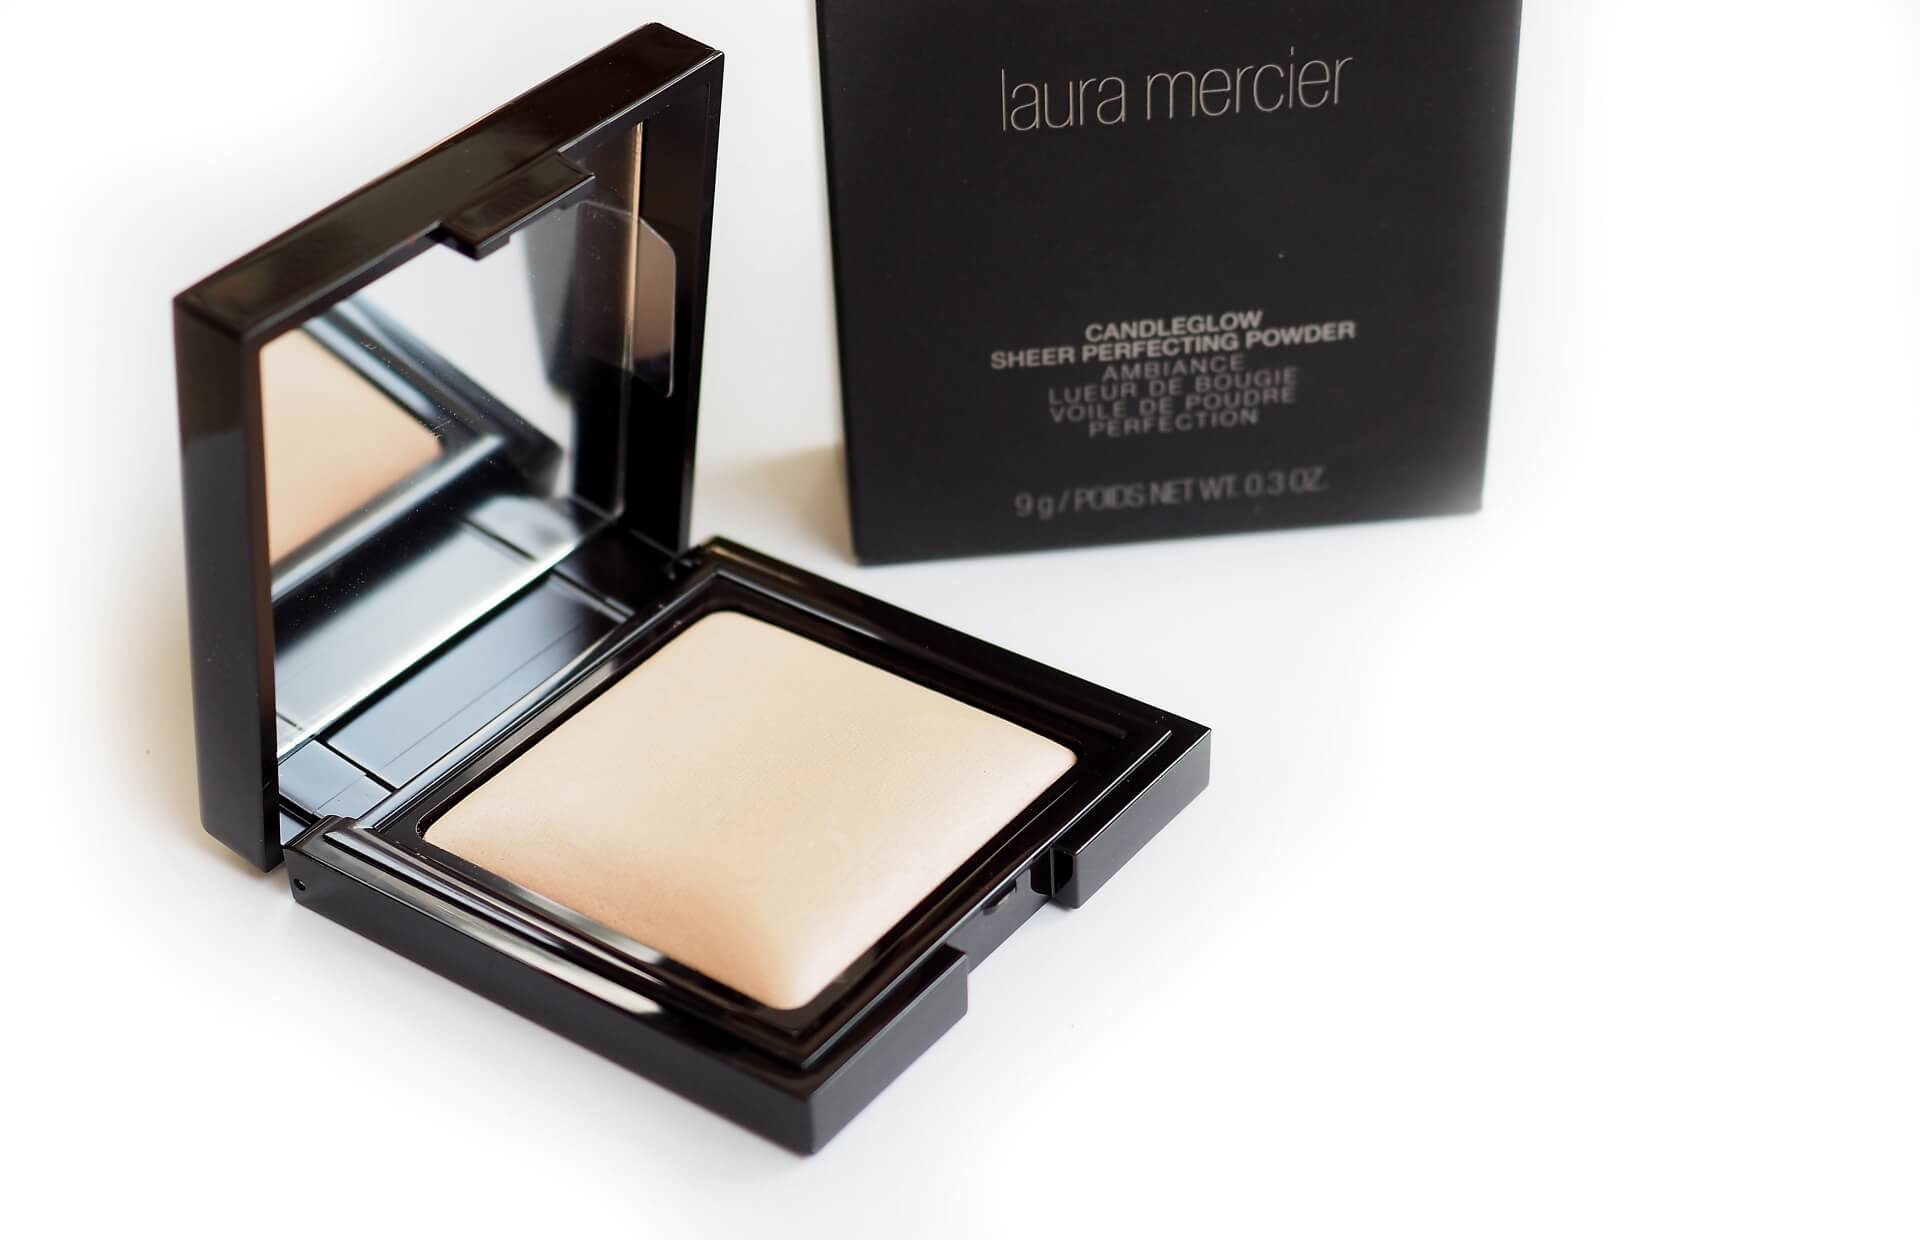 OPINIA LAURA MERCIER CANDLEGLOW SHEER PERFECTING POWDER